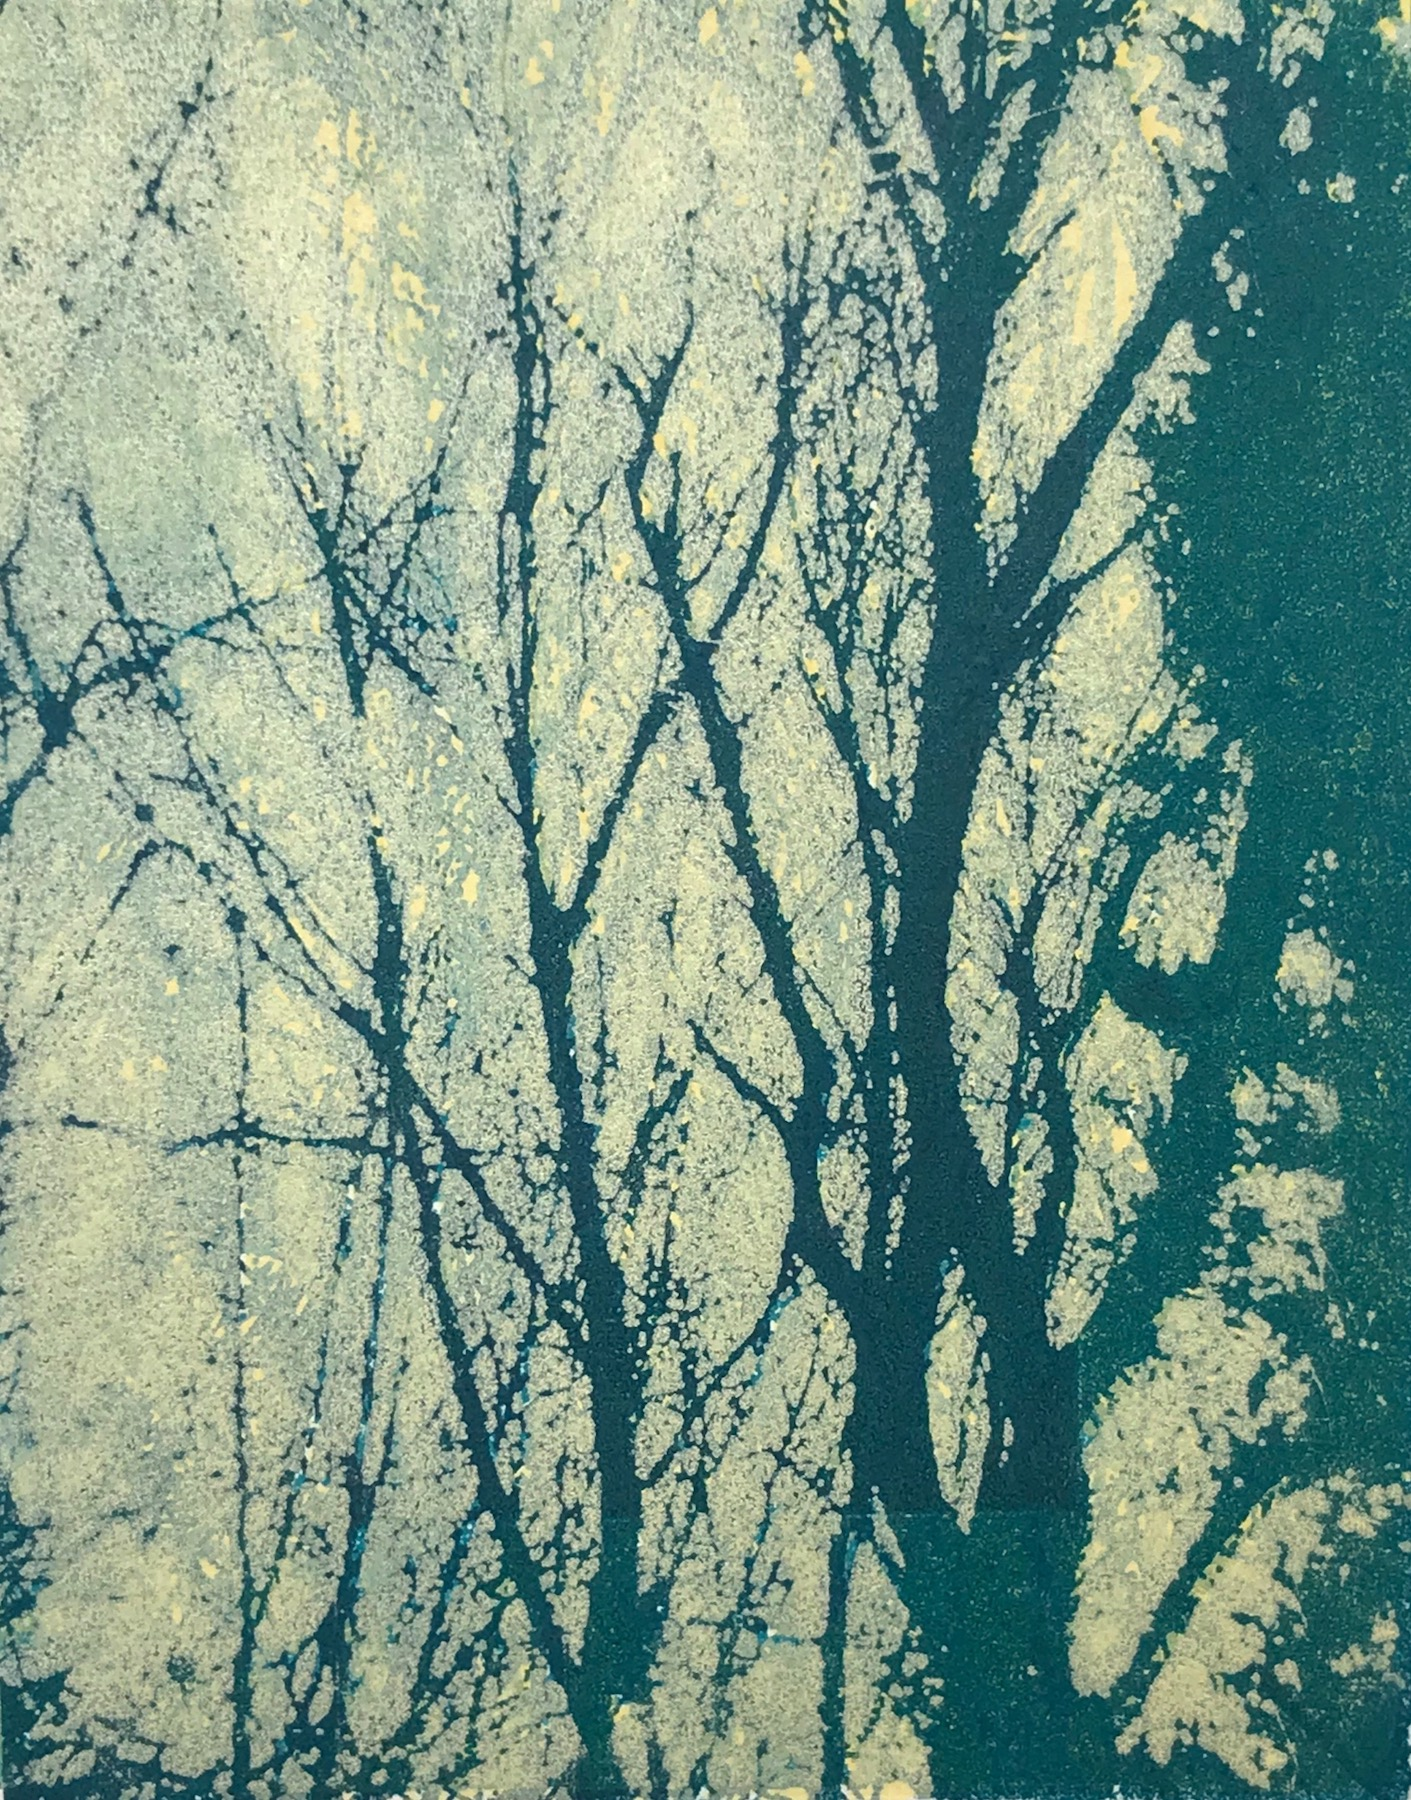 """Sundrenched Forest III"", monoprint, 10"" x 8"", $150 (unframed)"